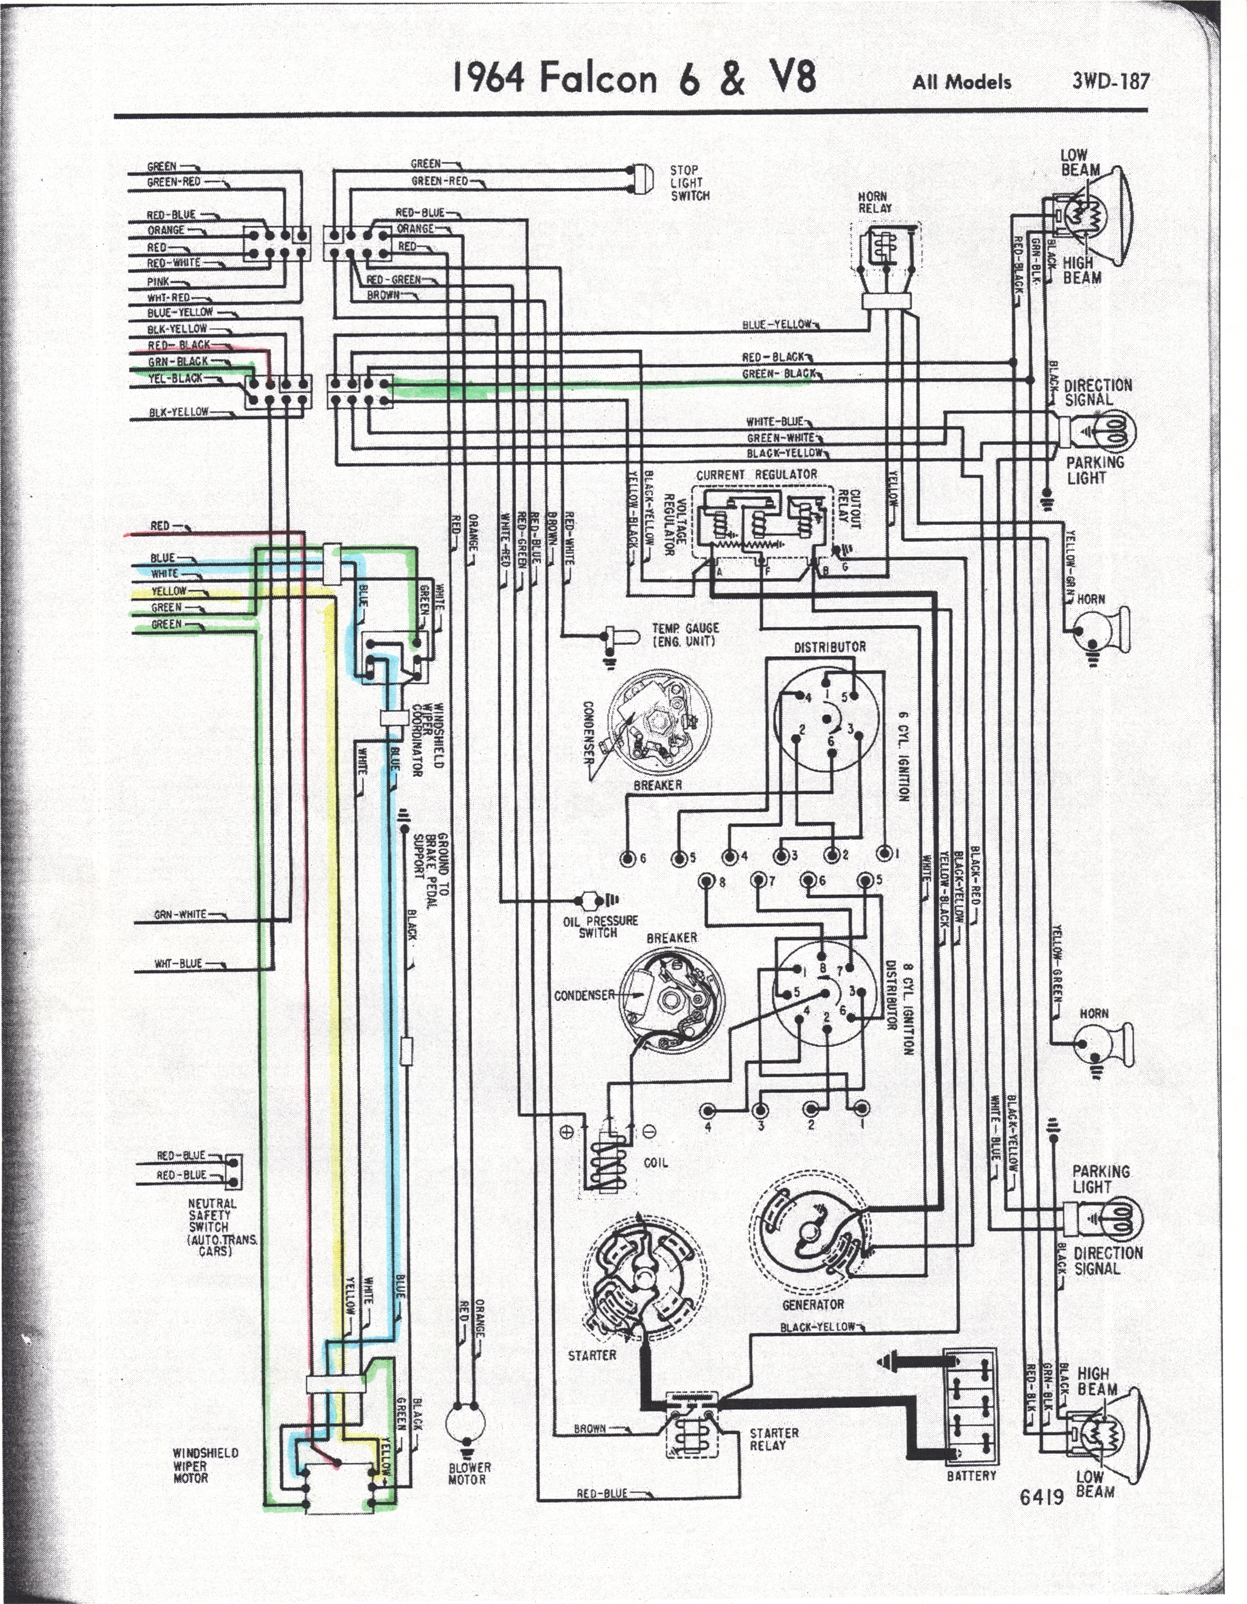 1962 Mercury Comet Wiring Diagram Daily Update Jensen Vm9324 Falcon Diagrams Rh Wizard Com